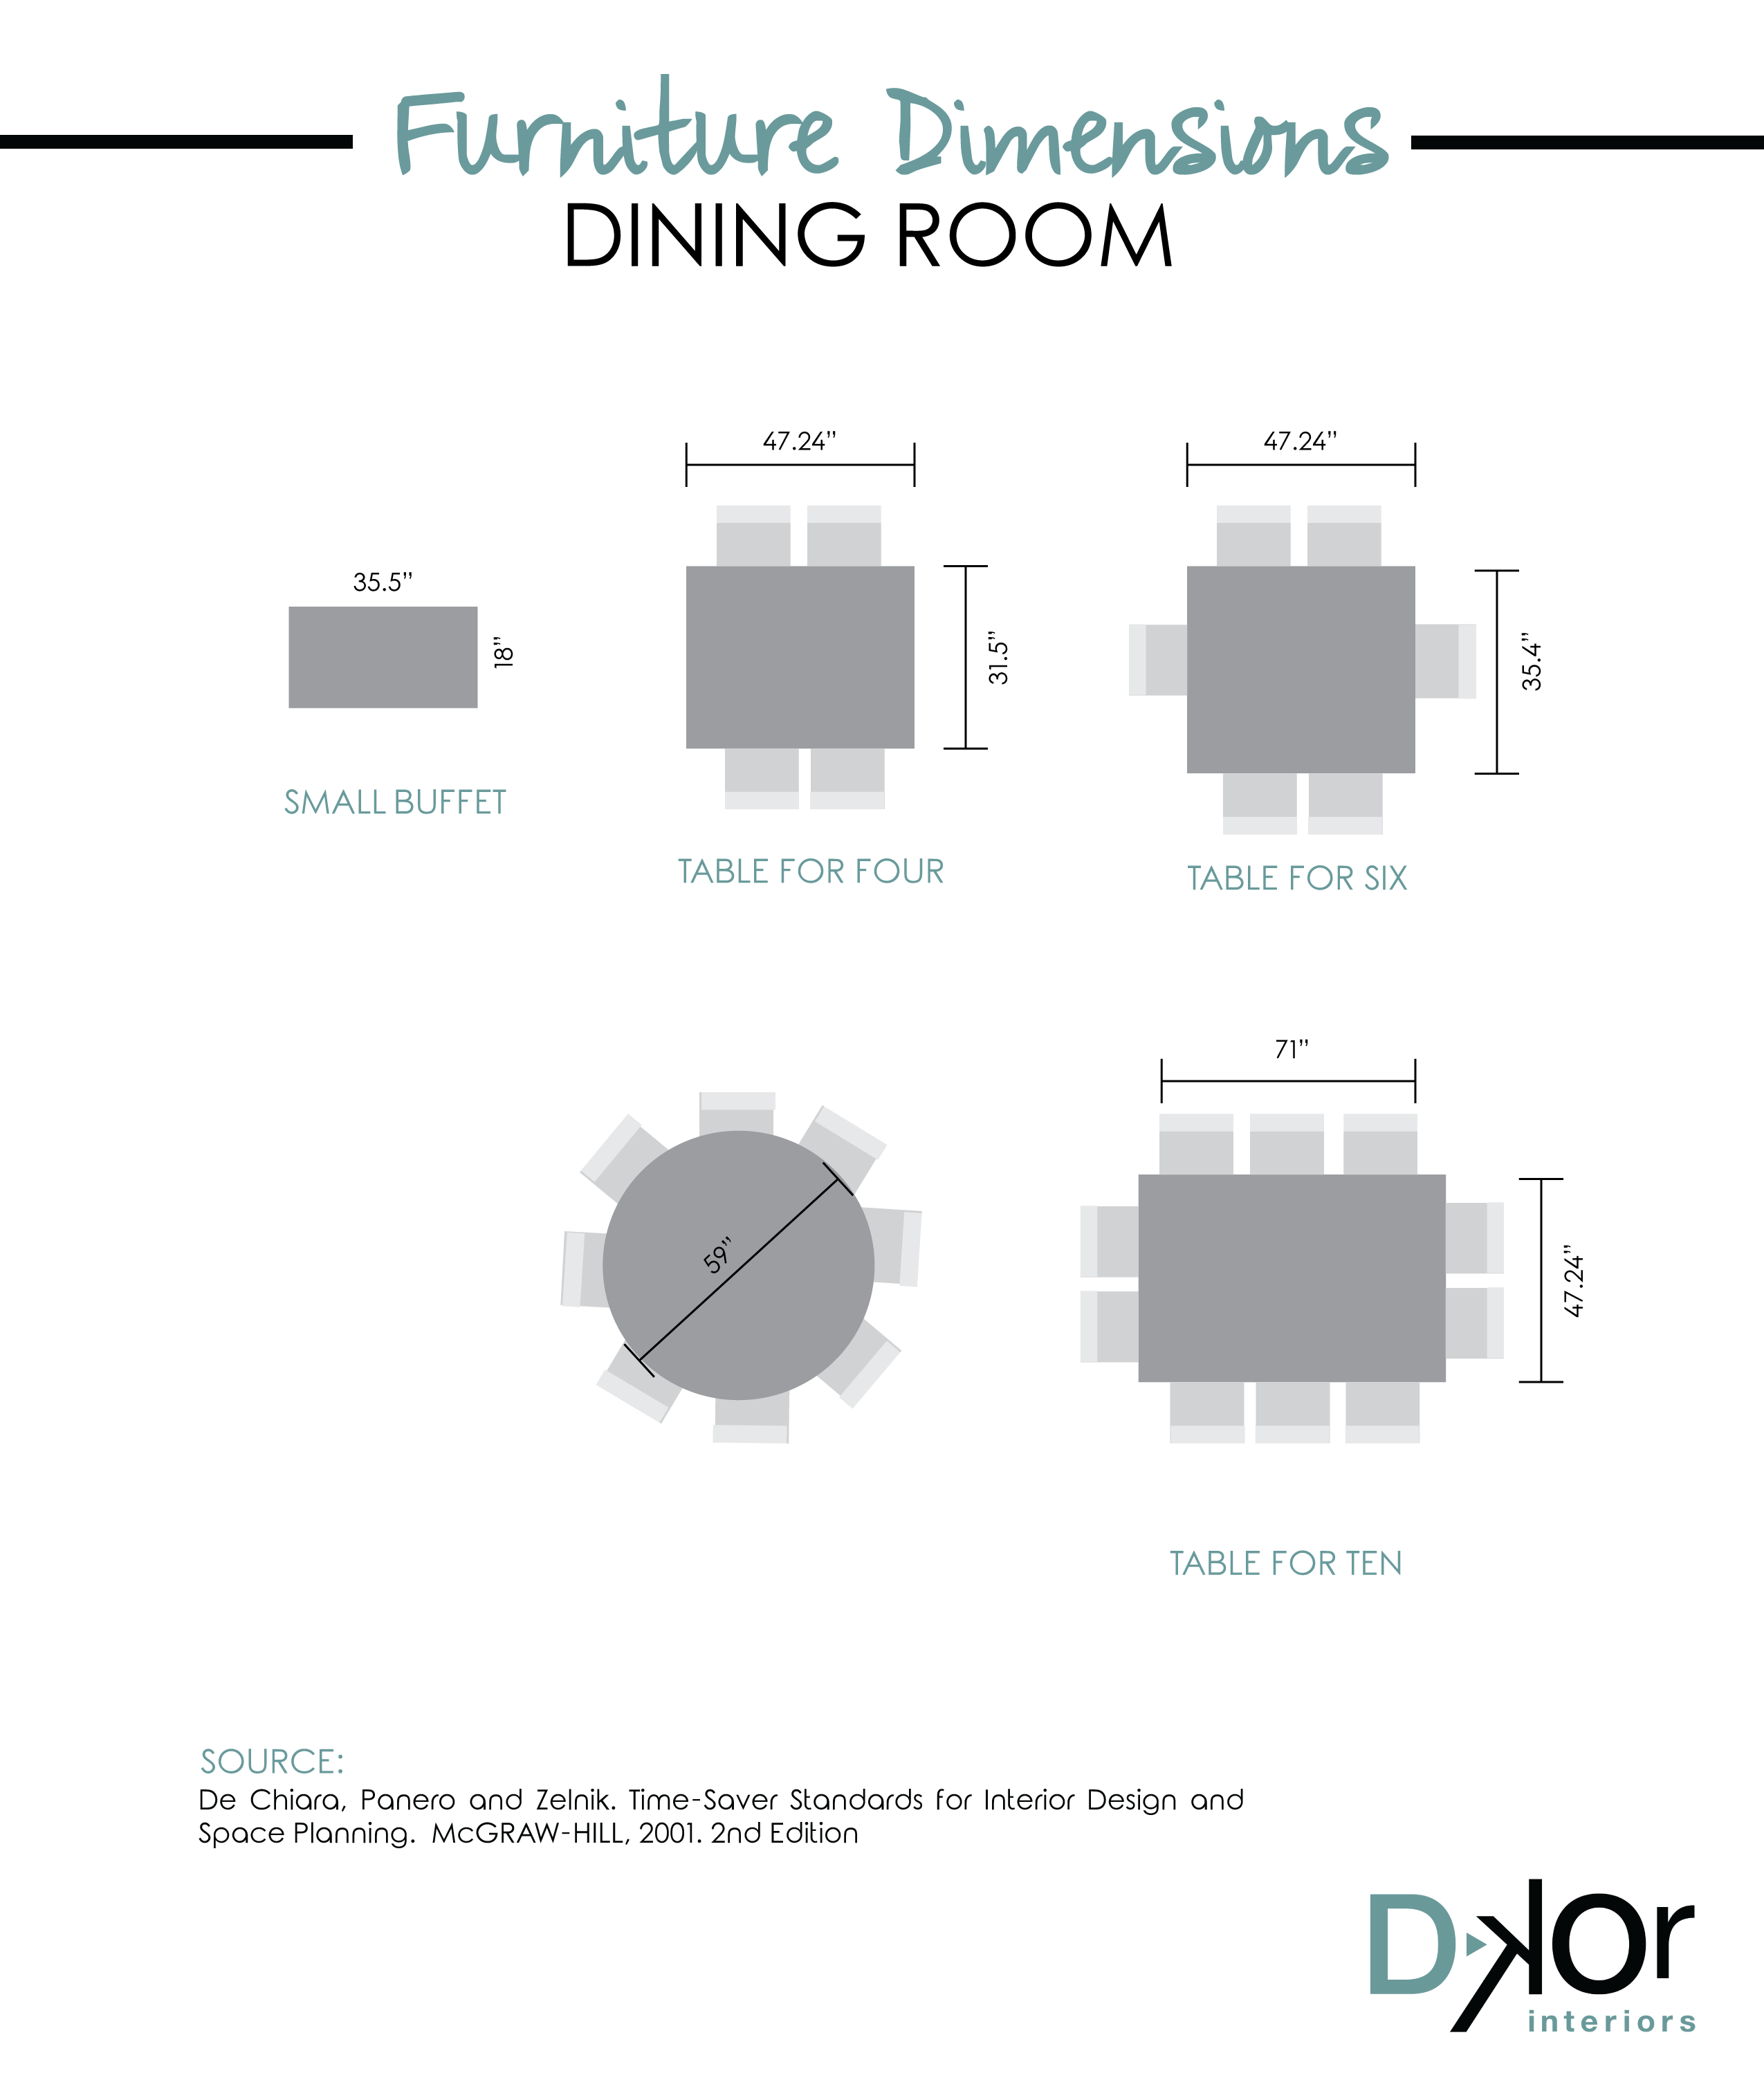 Dining Room Furniture Dimensions